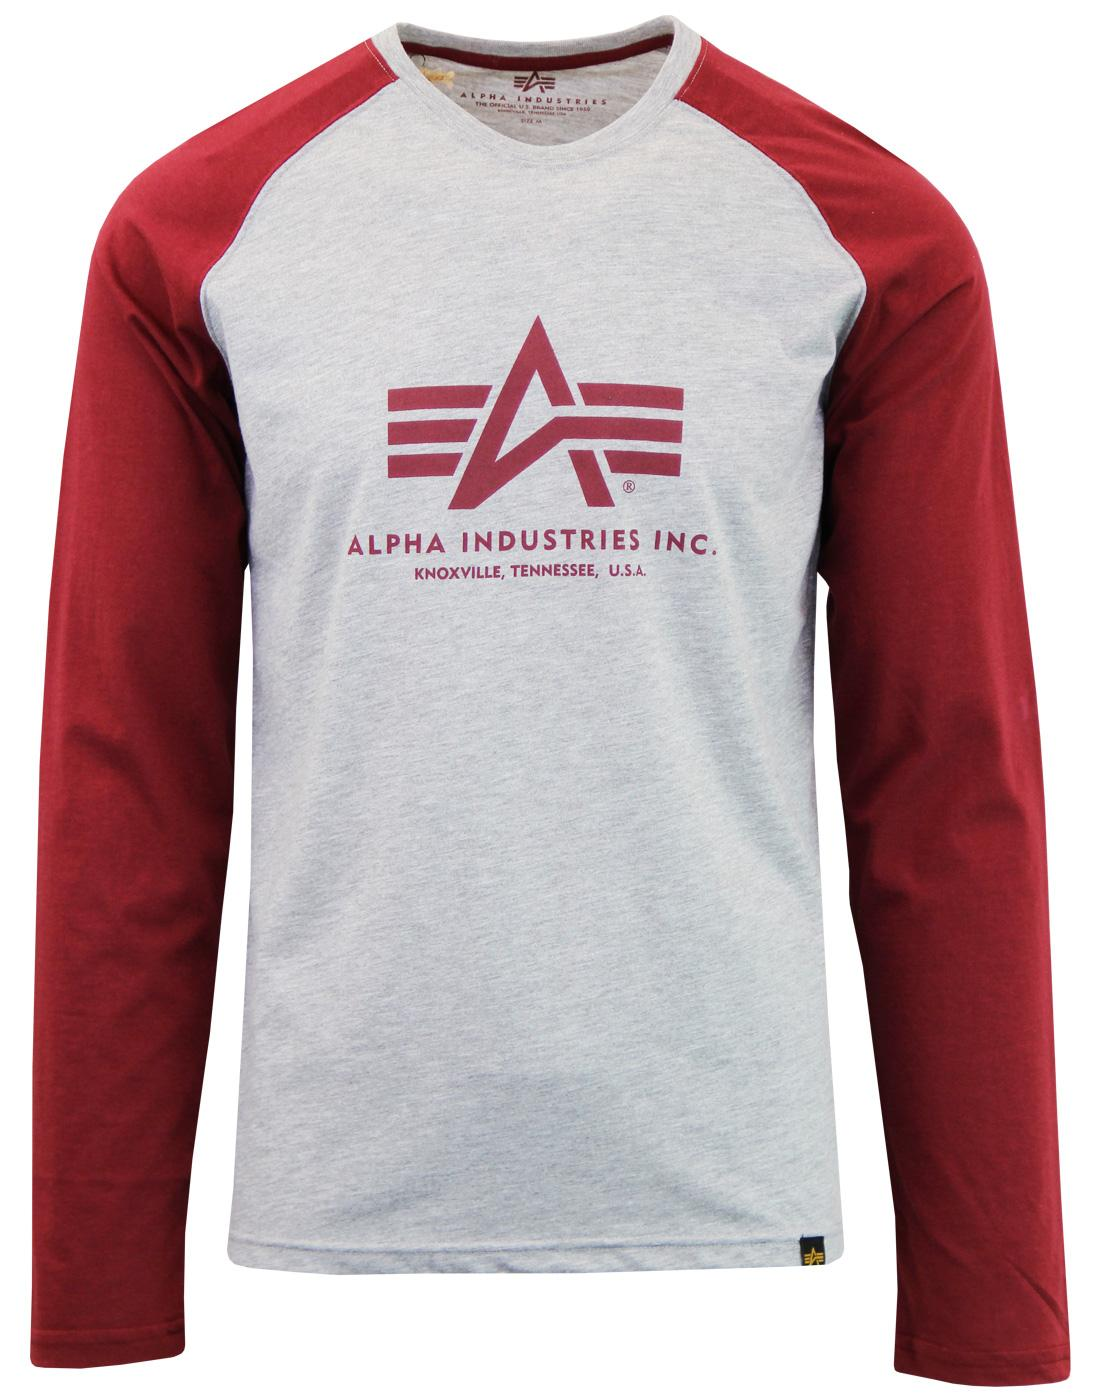 ALPHA INDUSTRIES Men's Retro 70s LS Raglan T-Shirt